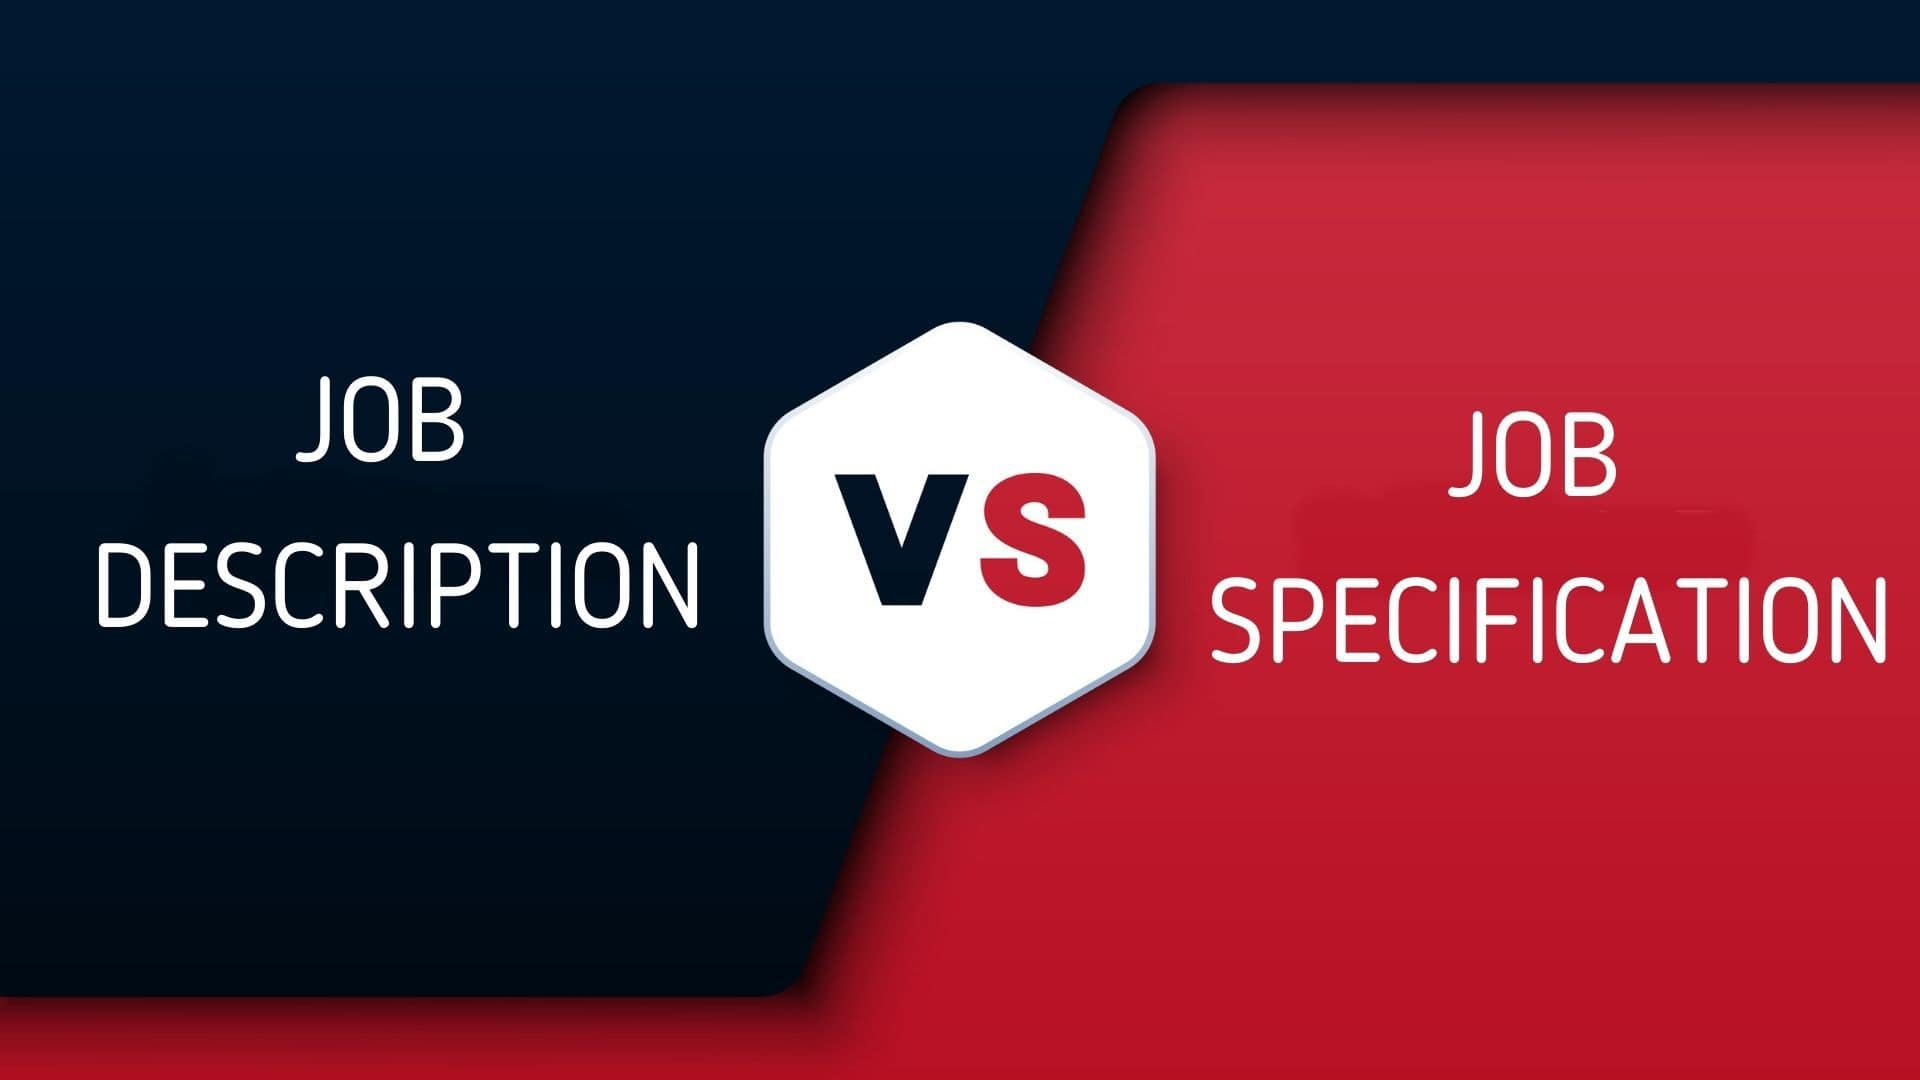 Difference between Job Description and Job Specification